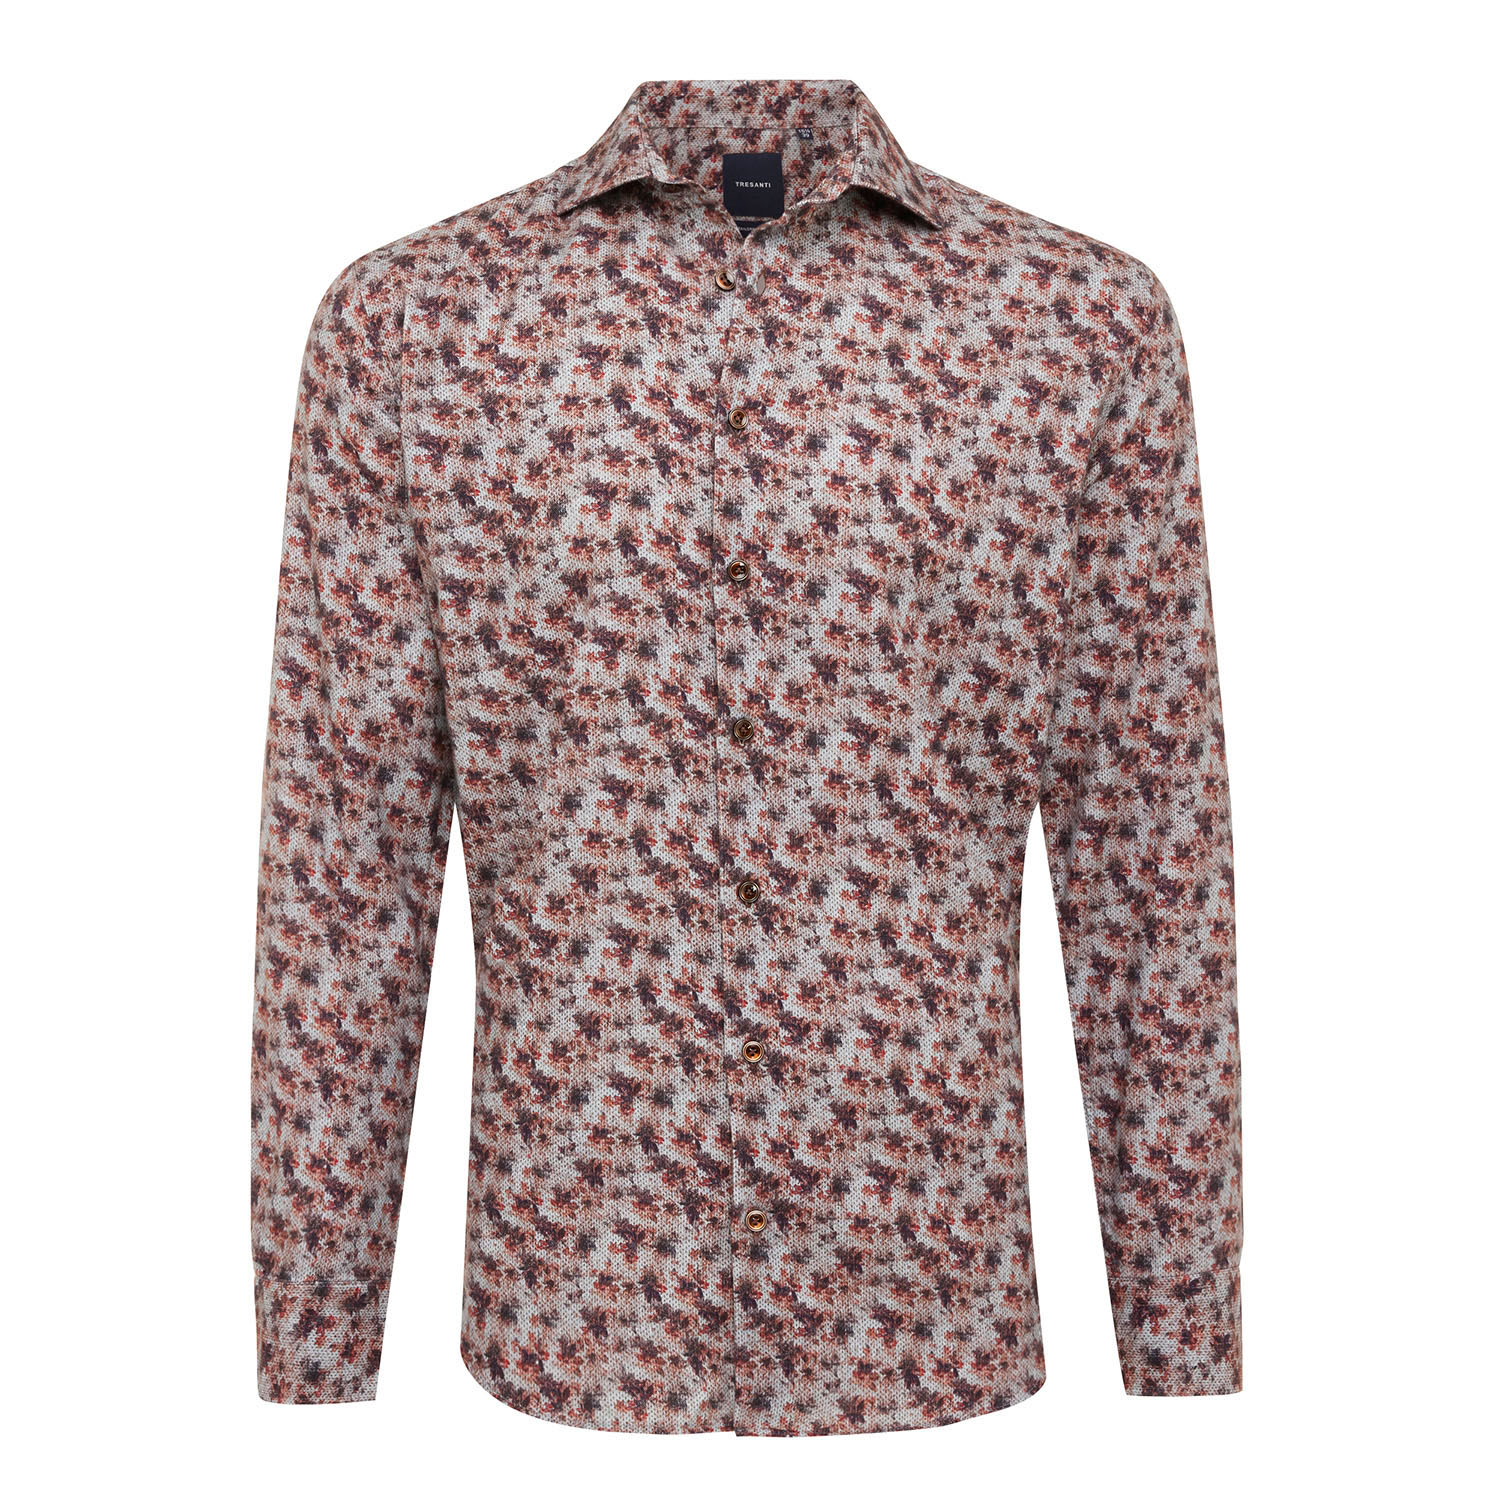 ELVAN | Shirt with button closure, burned red fantasy print